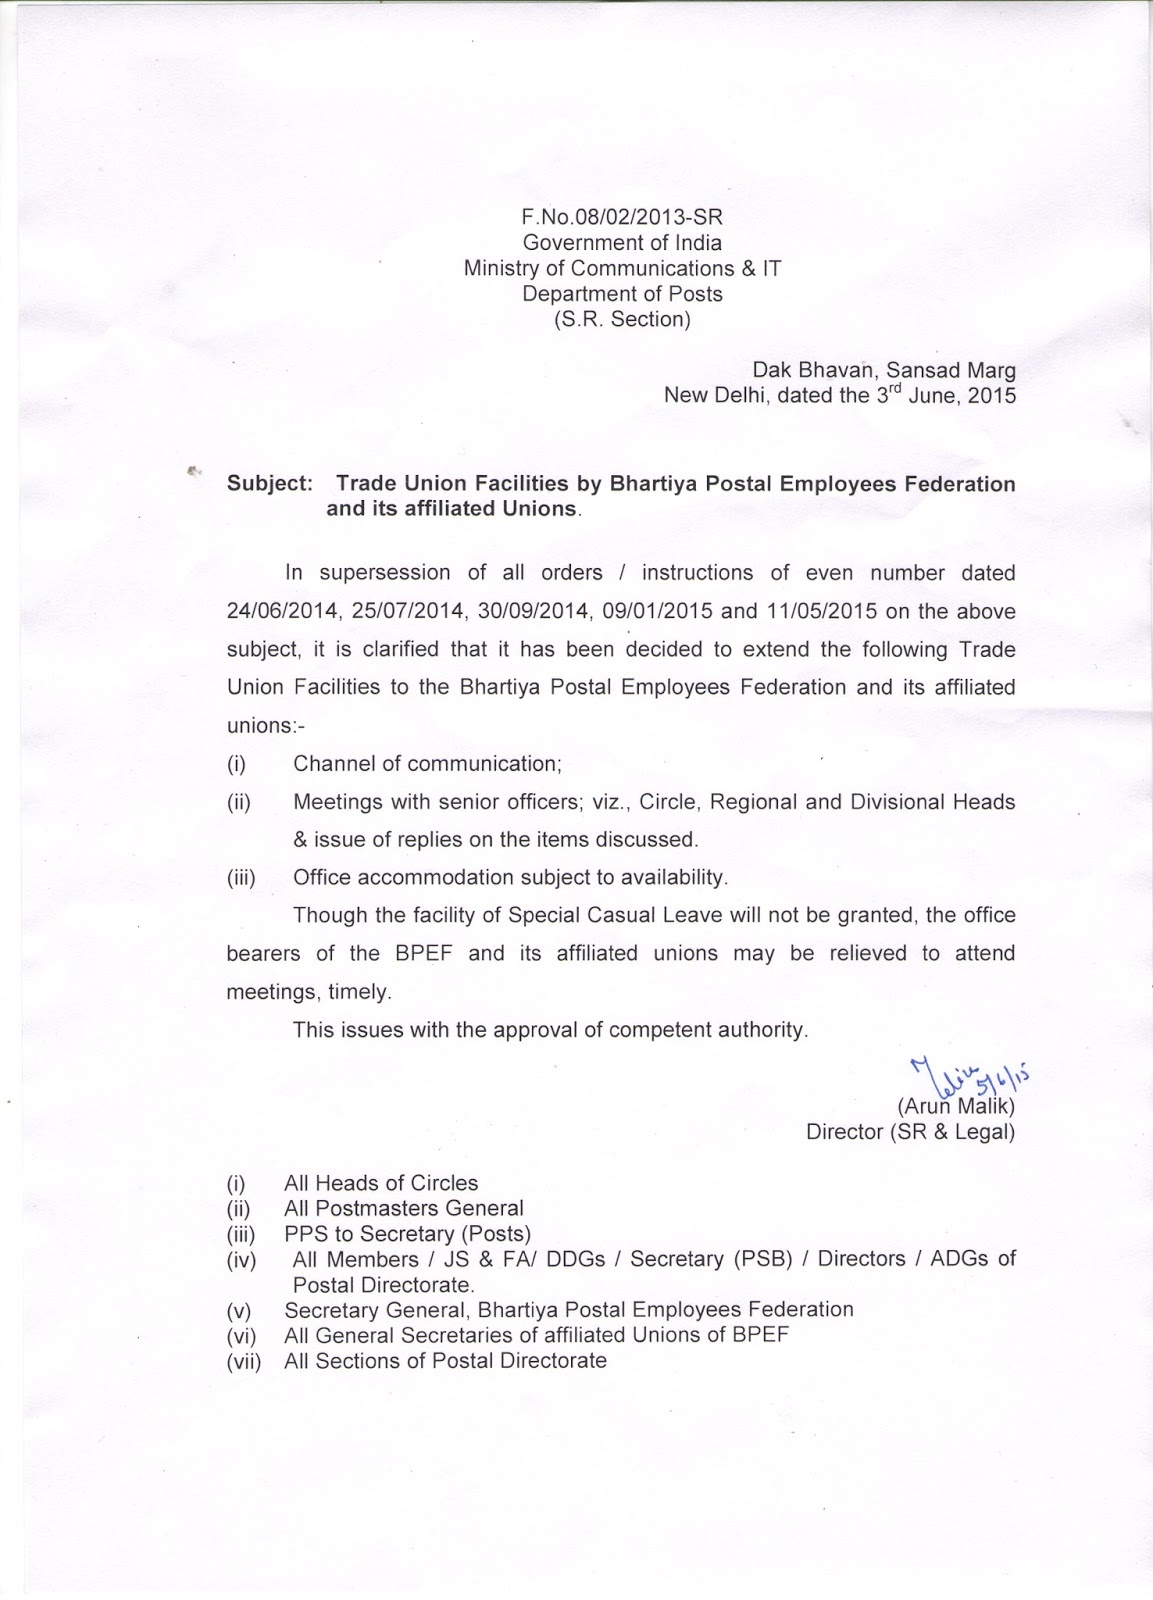 bharatiya postal employees federation 2015 trade union facilities by bharatiya postal employees federation and its affiliated unions clarification